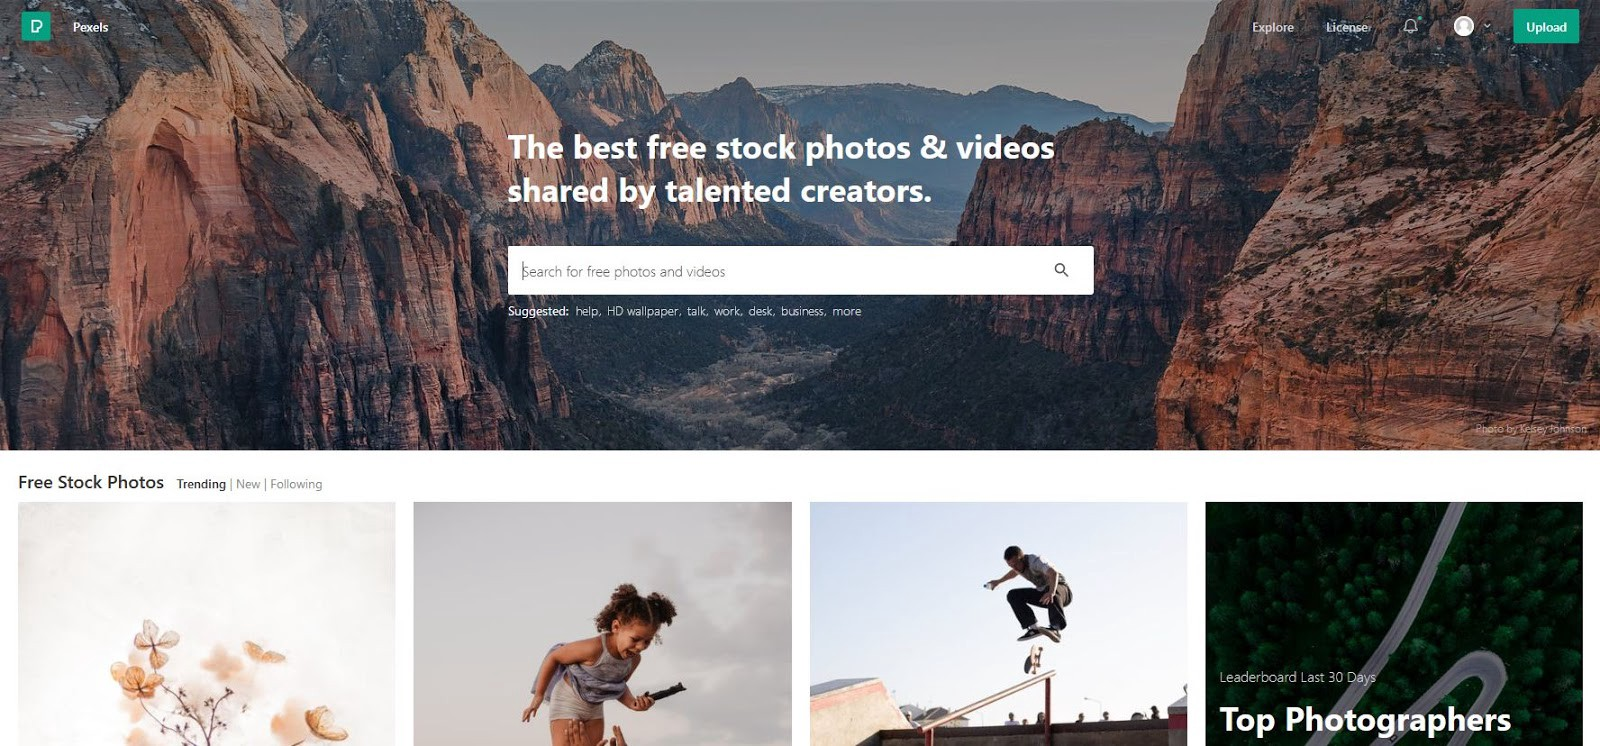 A screen shot of the Pexels homepage shows a gallery of stock photos and a search bar you can use to browse stock photos